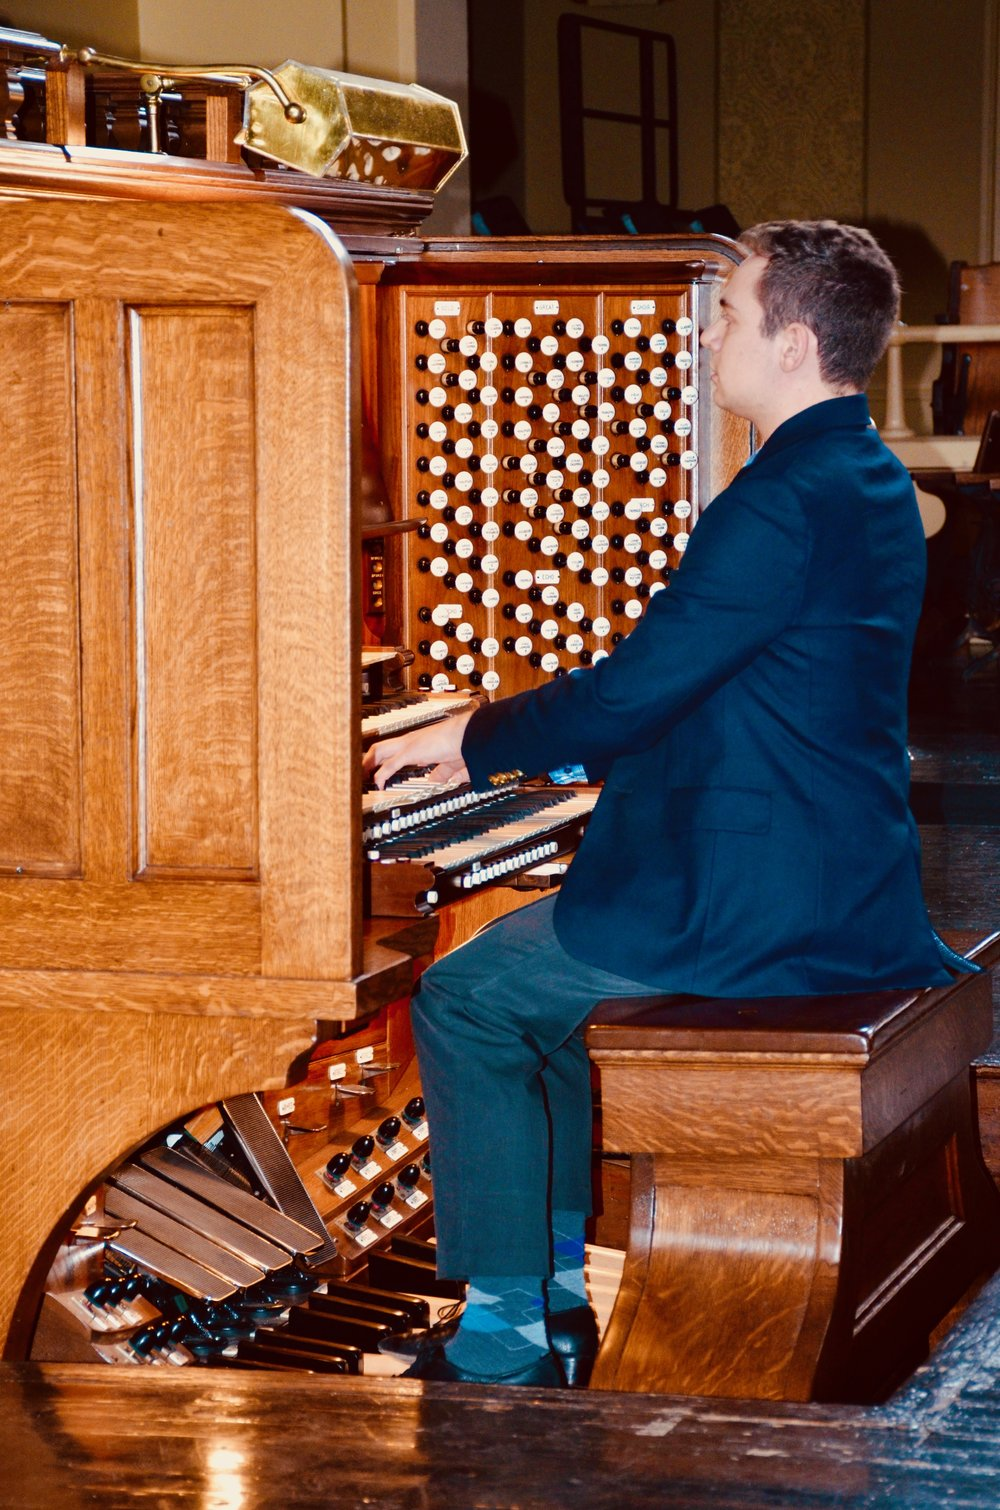 David von Behren demonstrates the Woolsey Hall organ for members of Boston Organ Studio